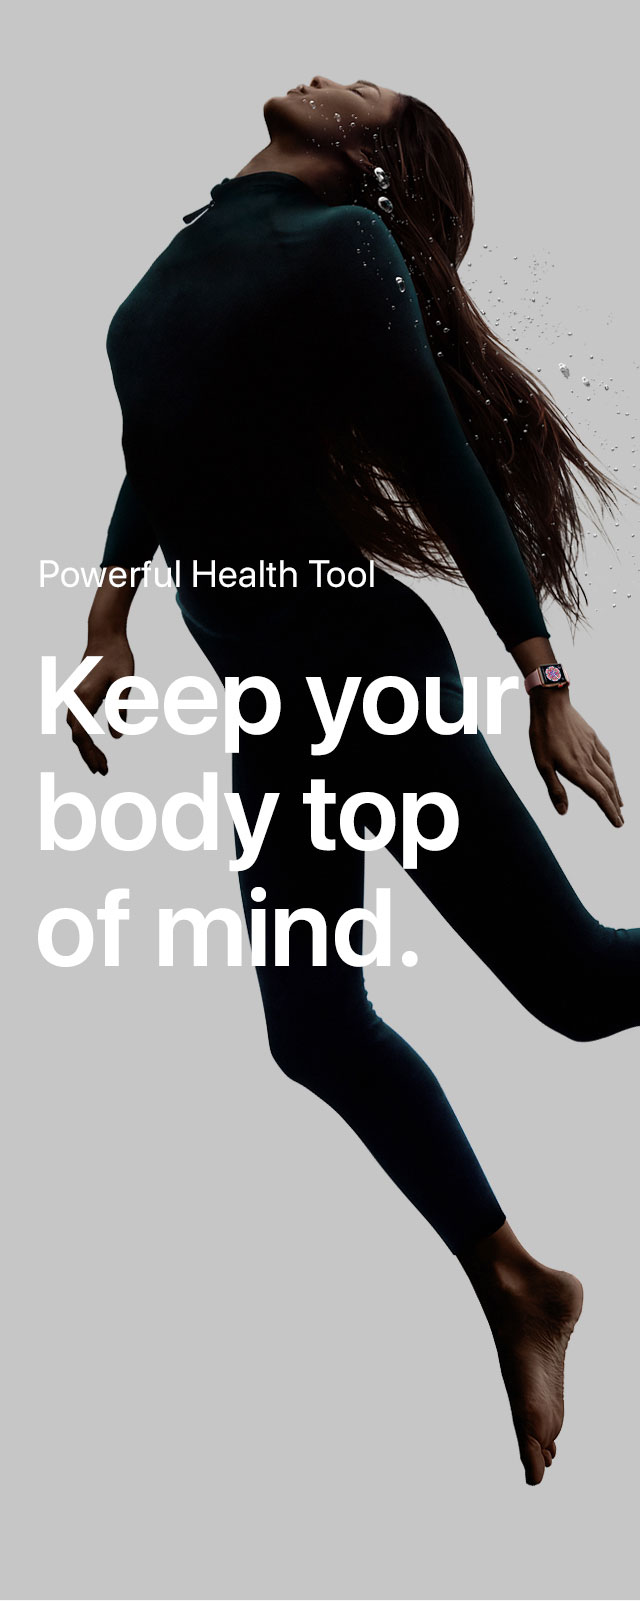 Powerful health tool. Keep your body  top of mind.